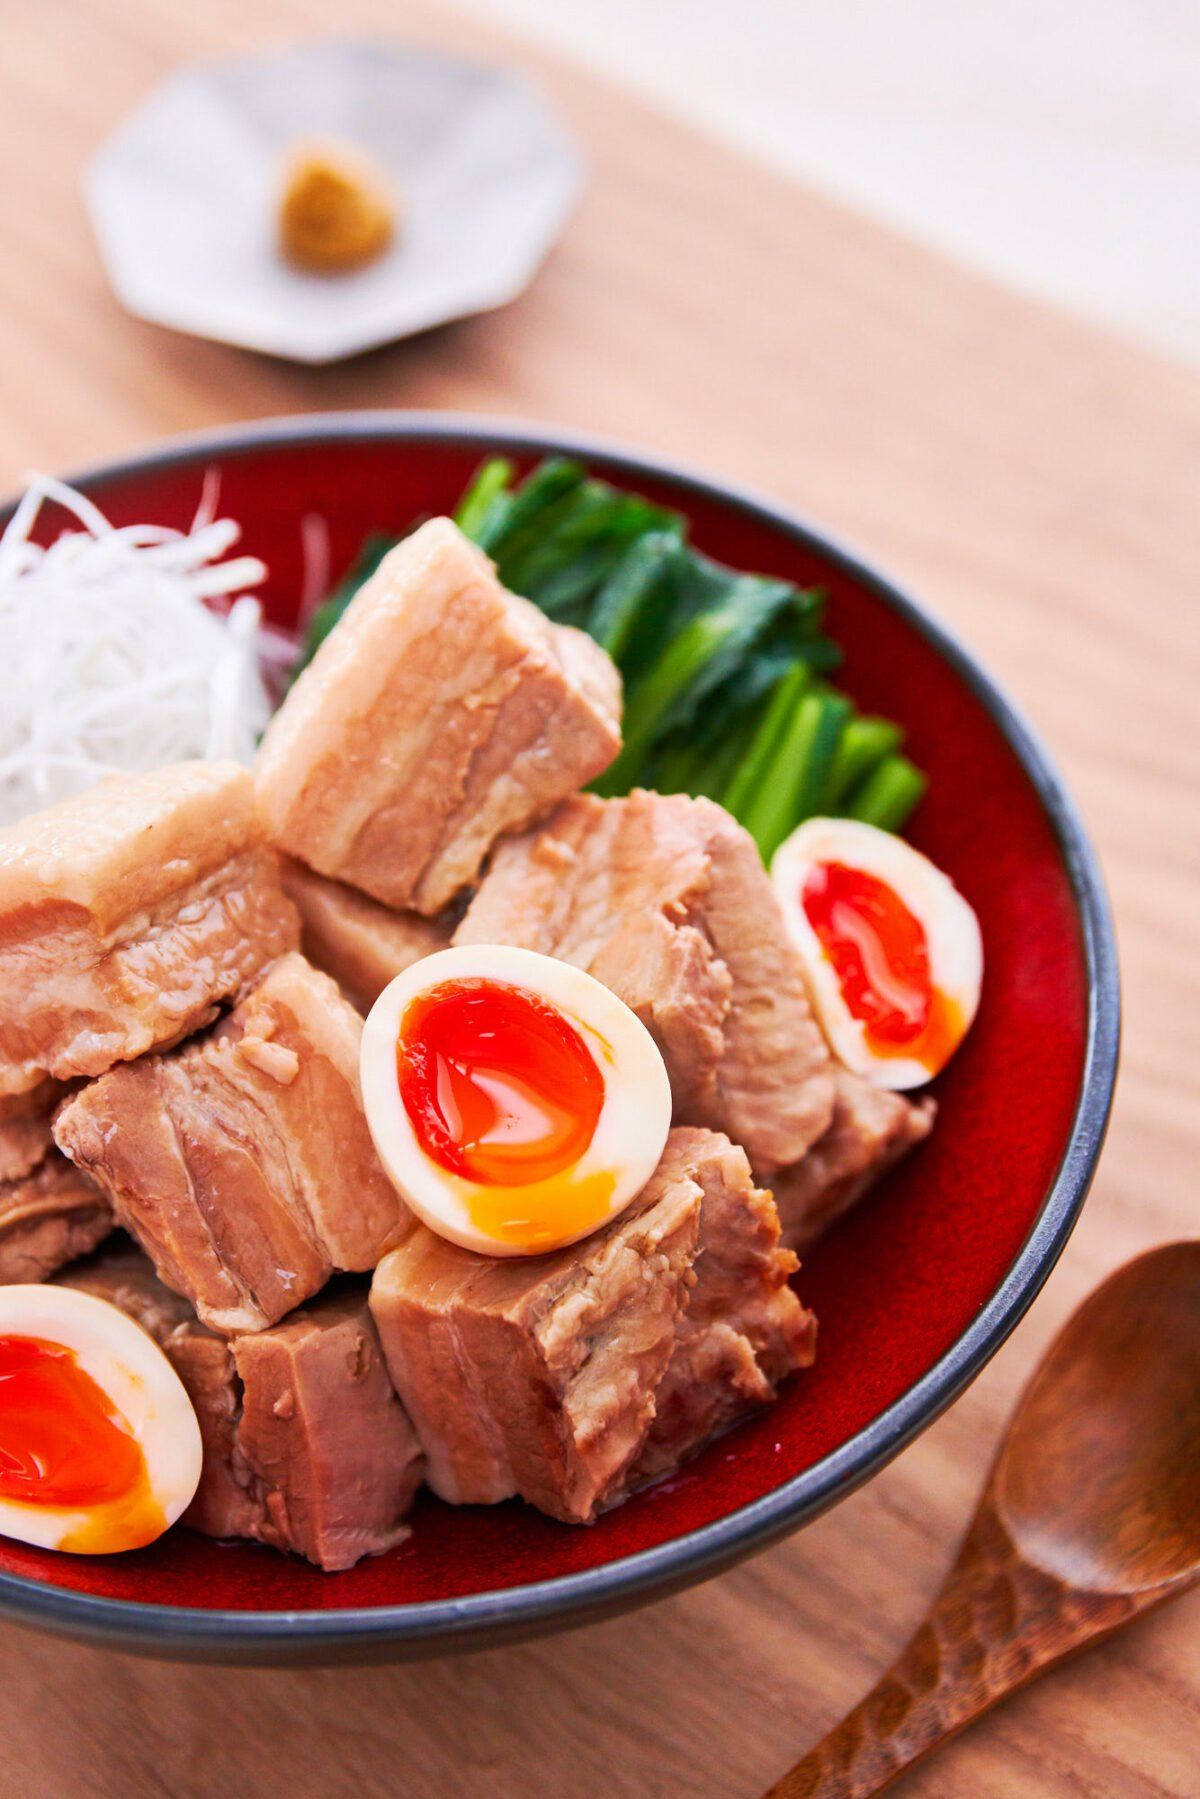 With cubes of pork braised with ginger, garlic and scallions until melt-in-your-mouth tender, this Kakuni recipe is Japanese favorite that makes for a delicious topping for ramen.